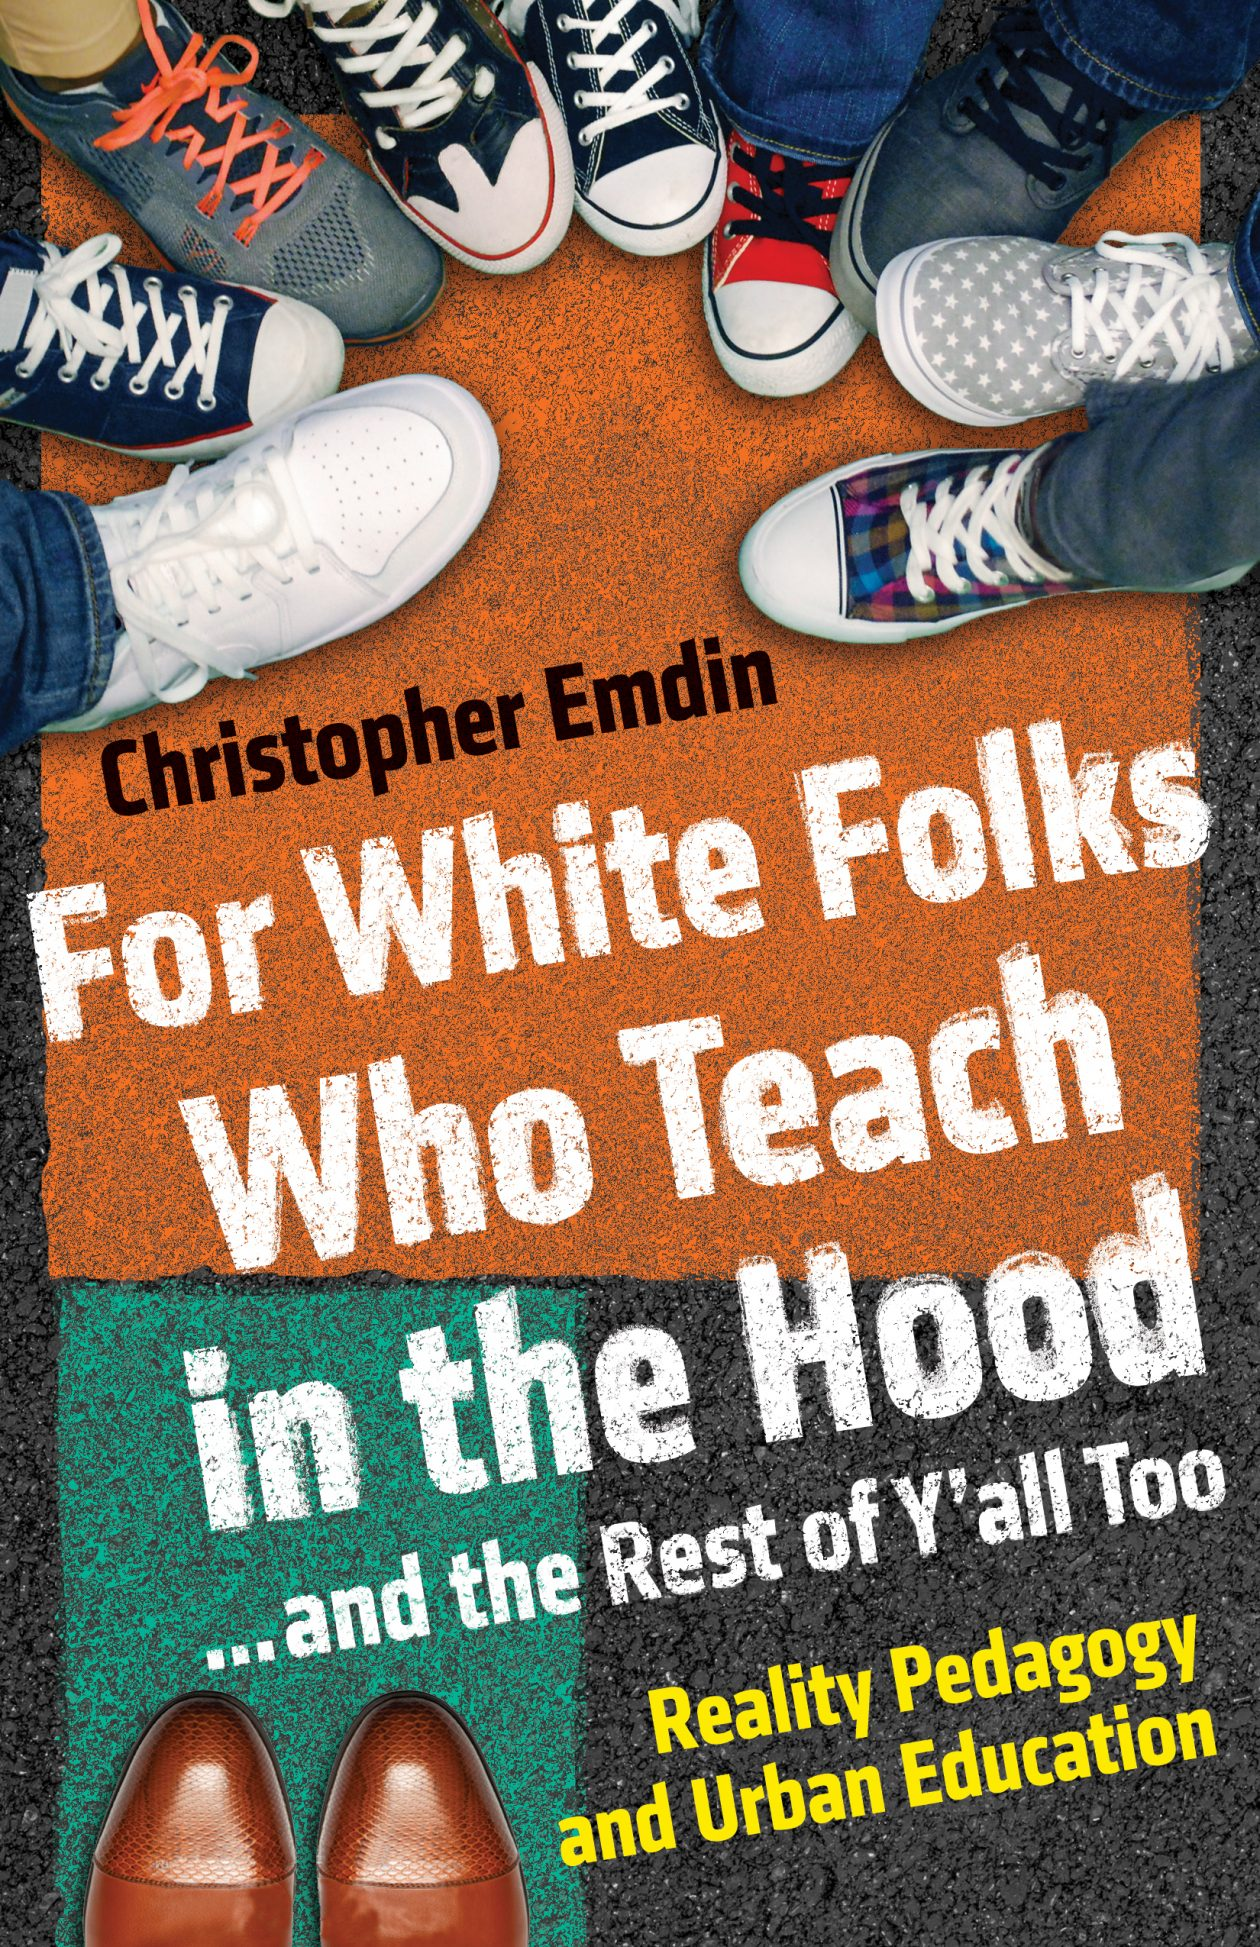 Emdin-ForWhiteFolksWhoTeachintheHood (1)